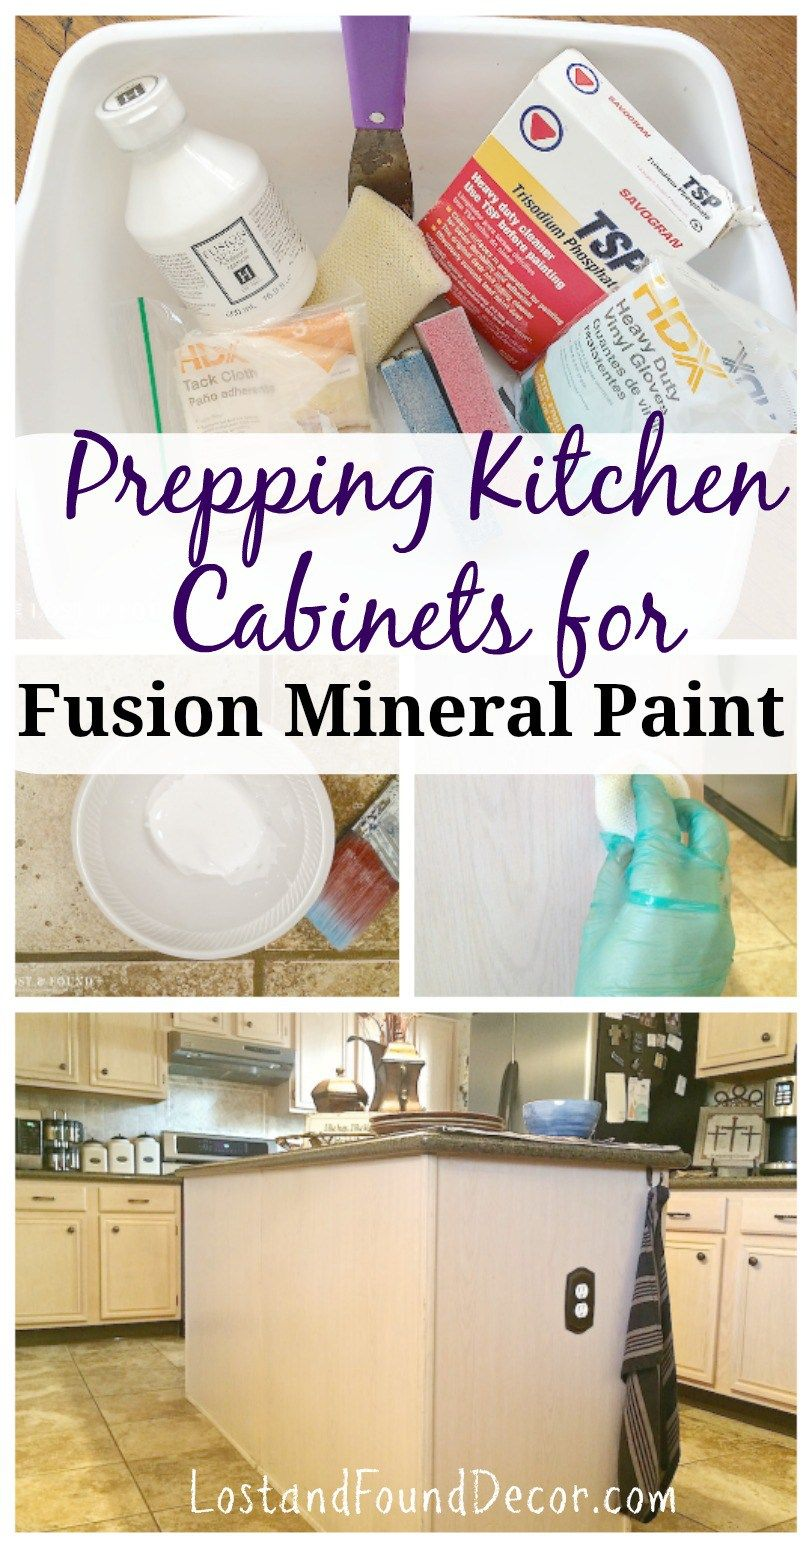 How To Prep Kitchen Cabinets For Painting With Fusion Mineral Paint Fusion Mineral Paint Mineral Paint Kitchen Cabinets Makeover